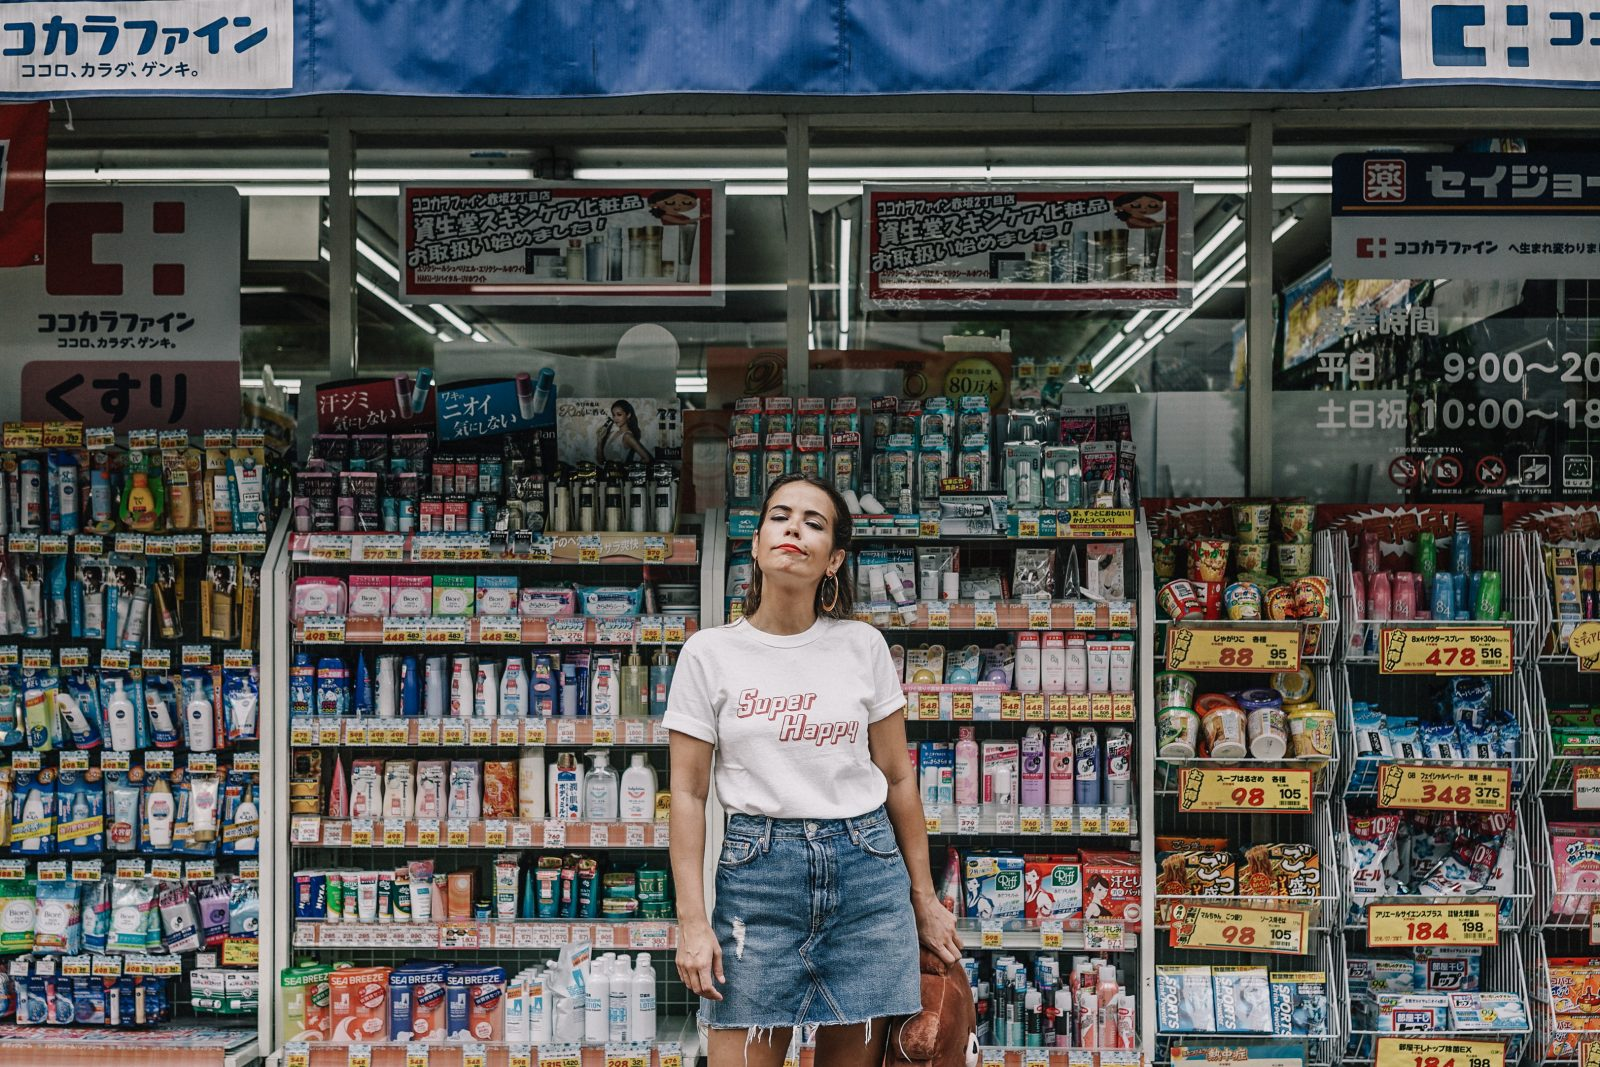 tokyo_travel_guide-outfit-collage_vintage-street_style-super_happy_top-line_friends-levis_vintage-tokyo_shopping